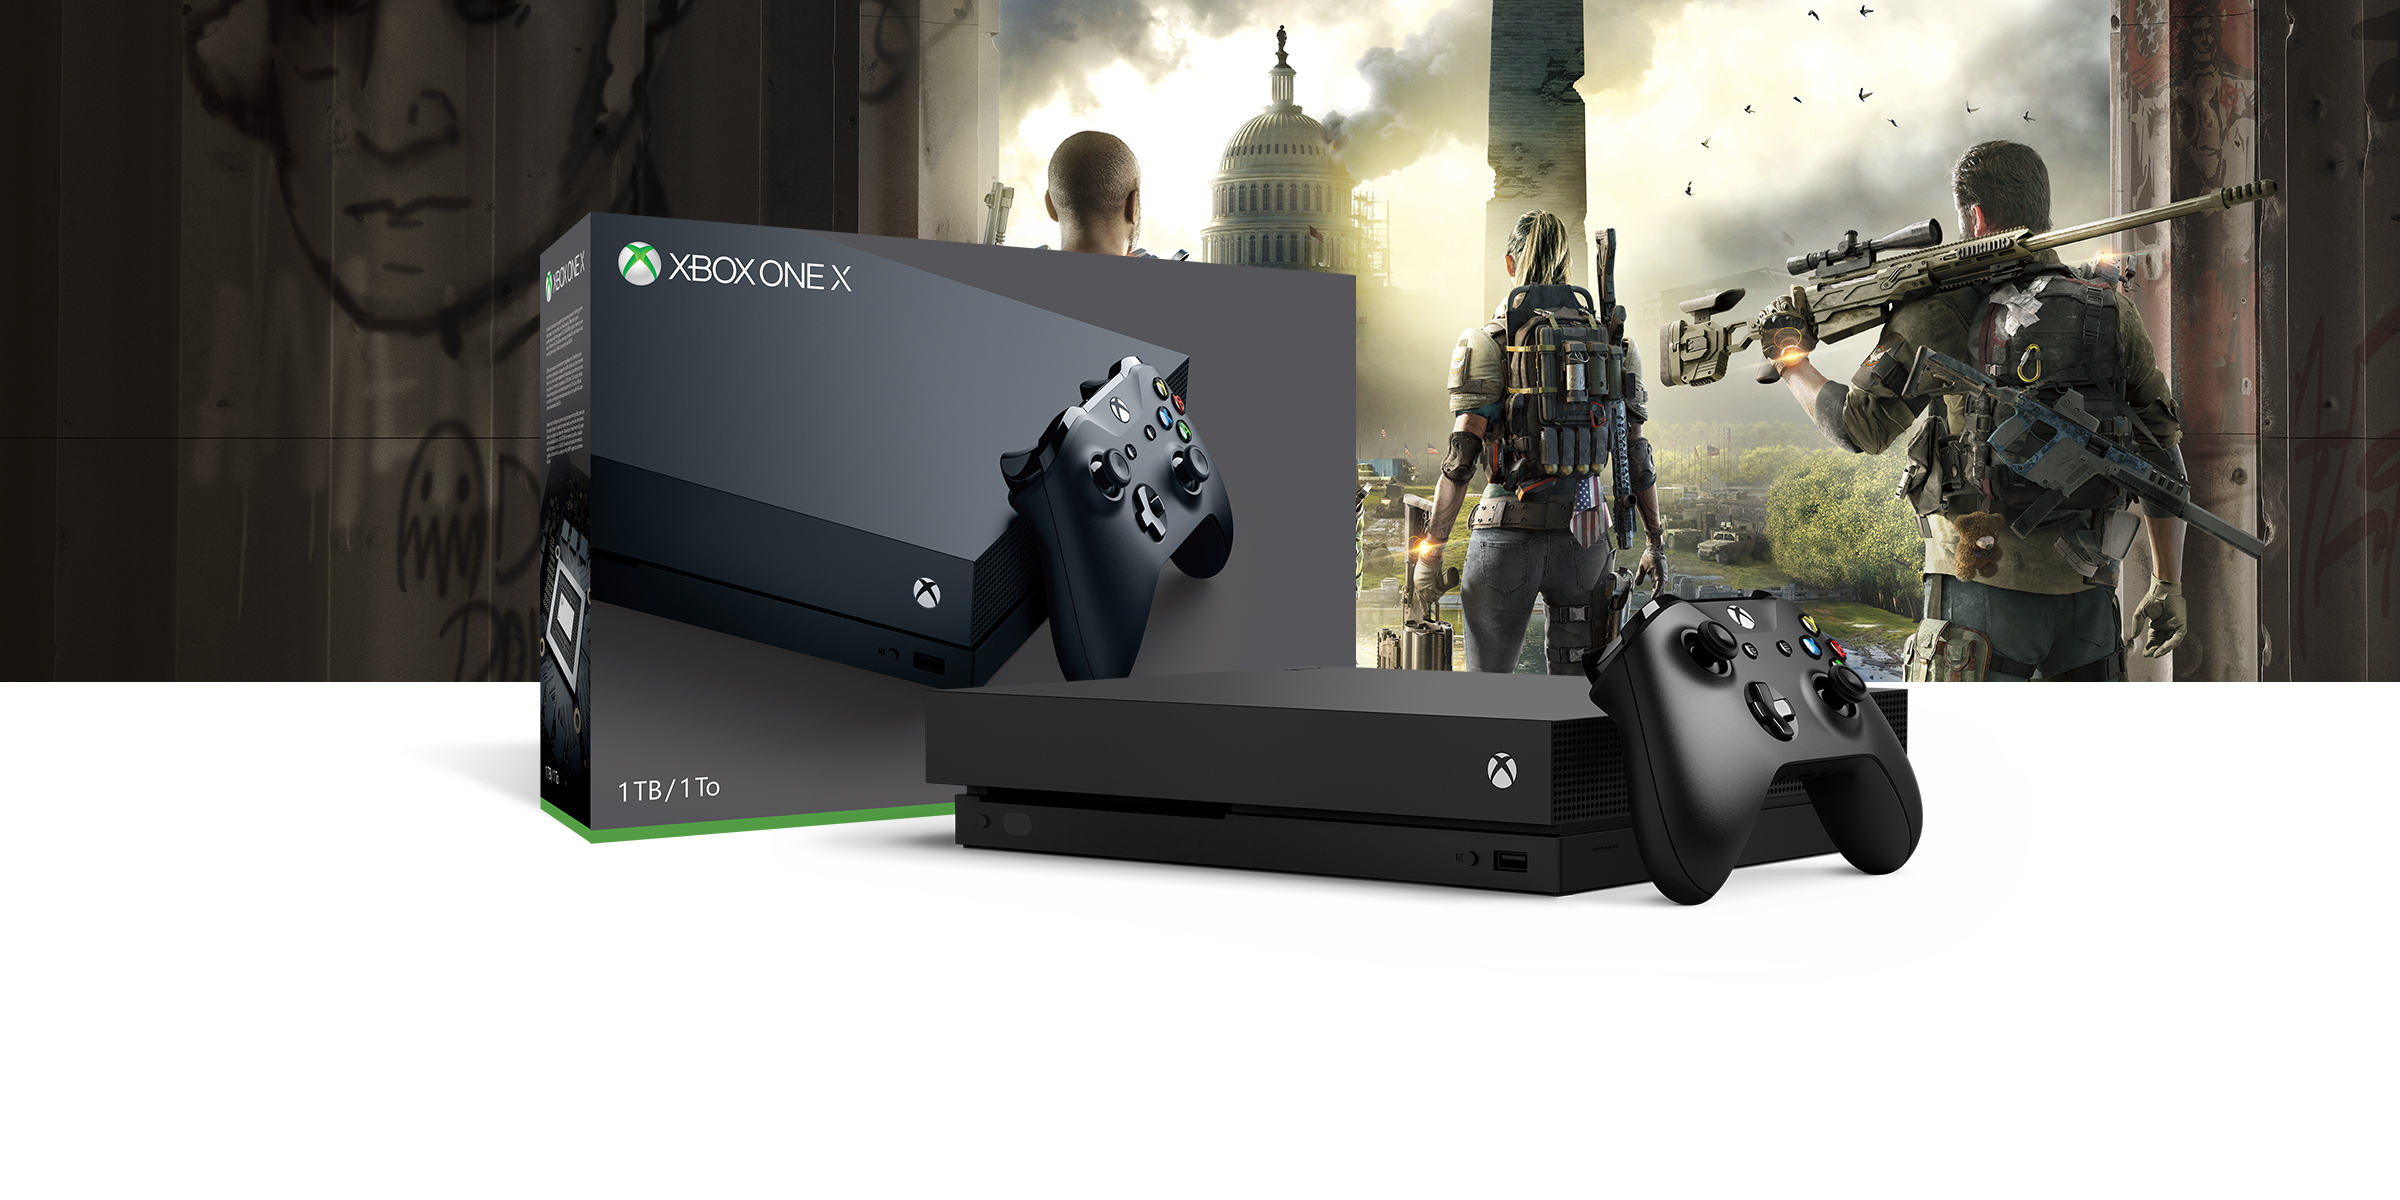 Xbox One X Tom Clancy's The Division 2 Bundle